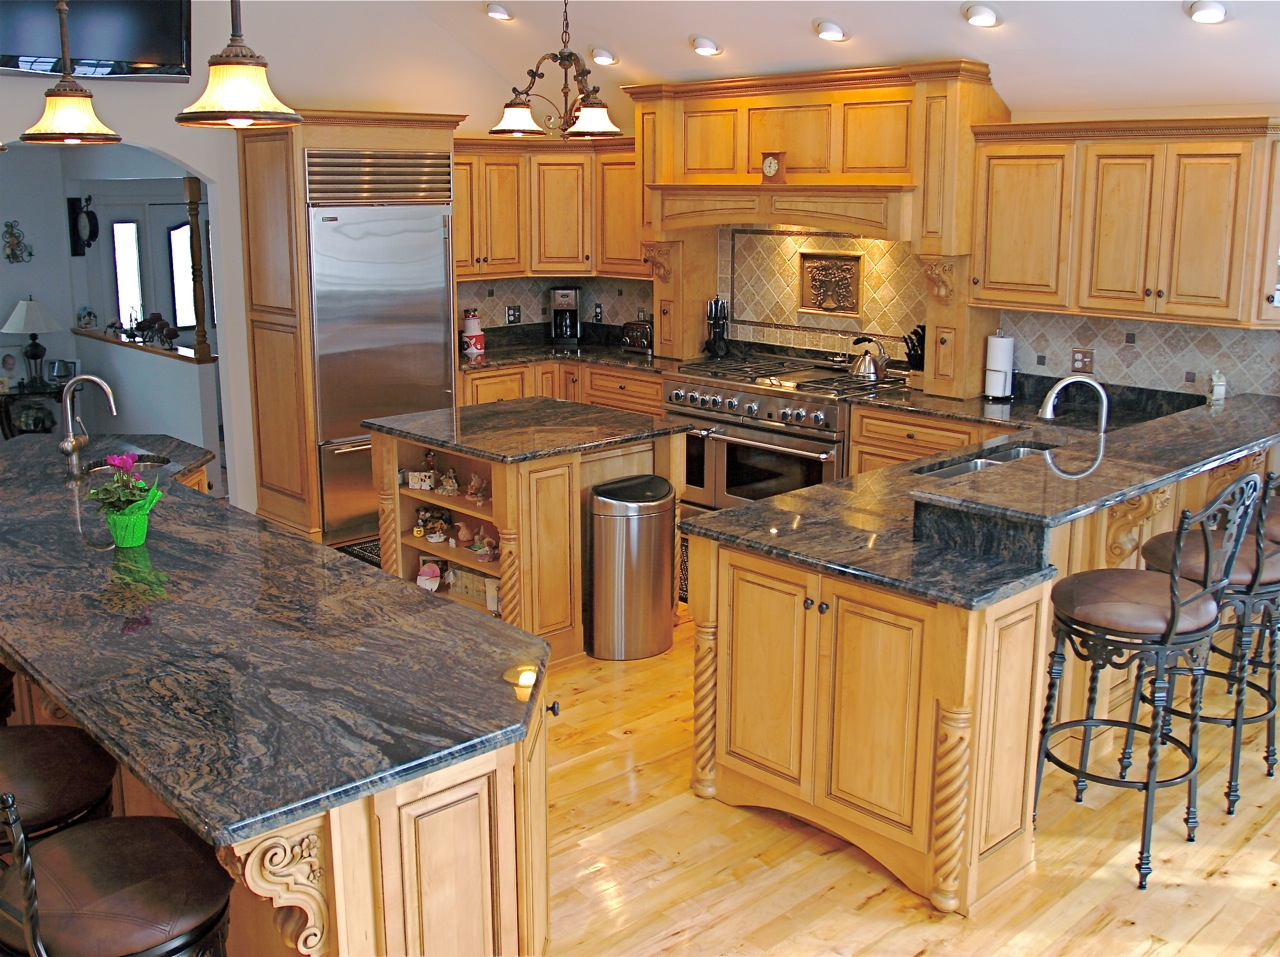 hgtv countertop prices remodel kitchen best for countertops